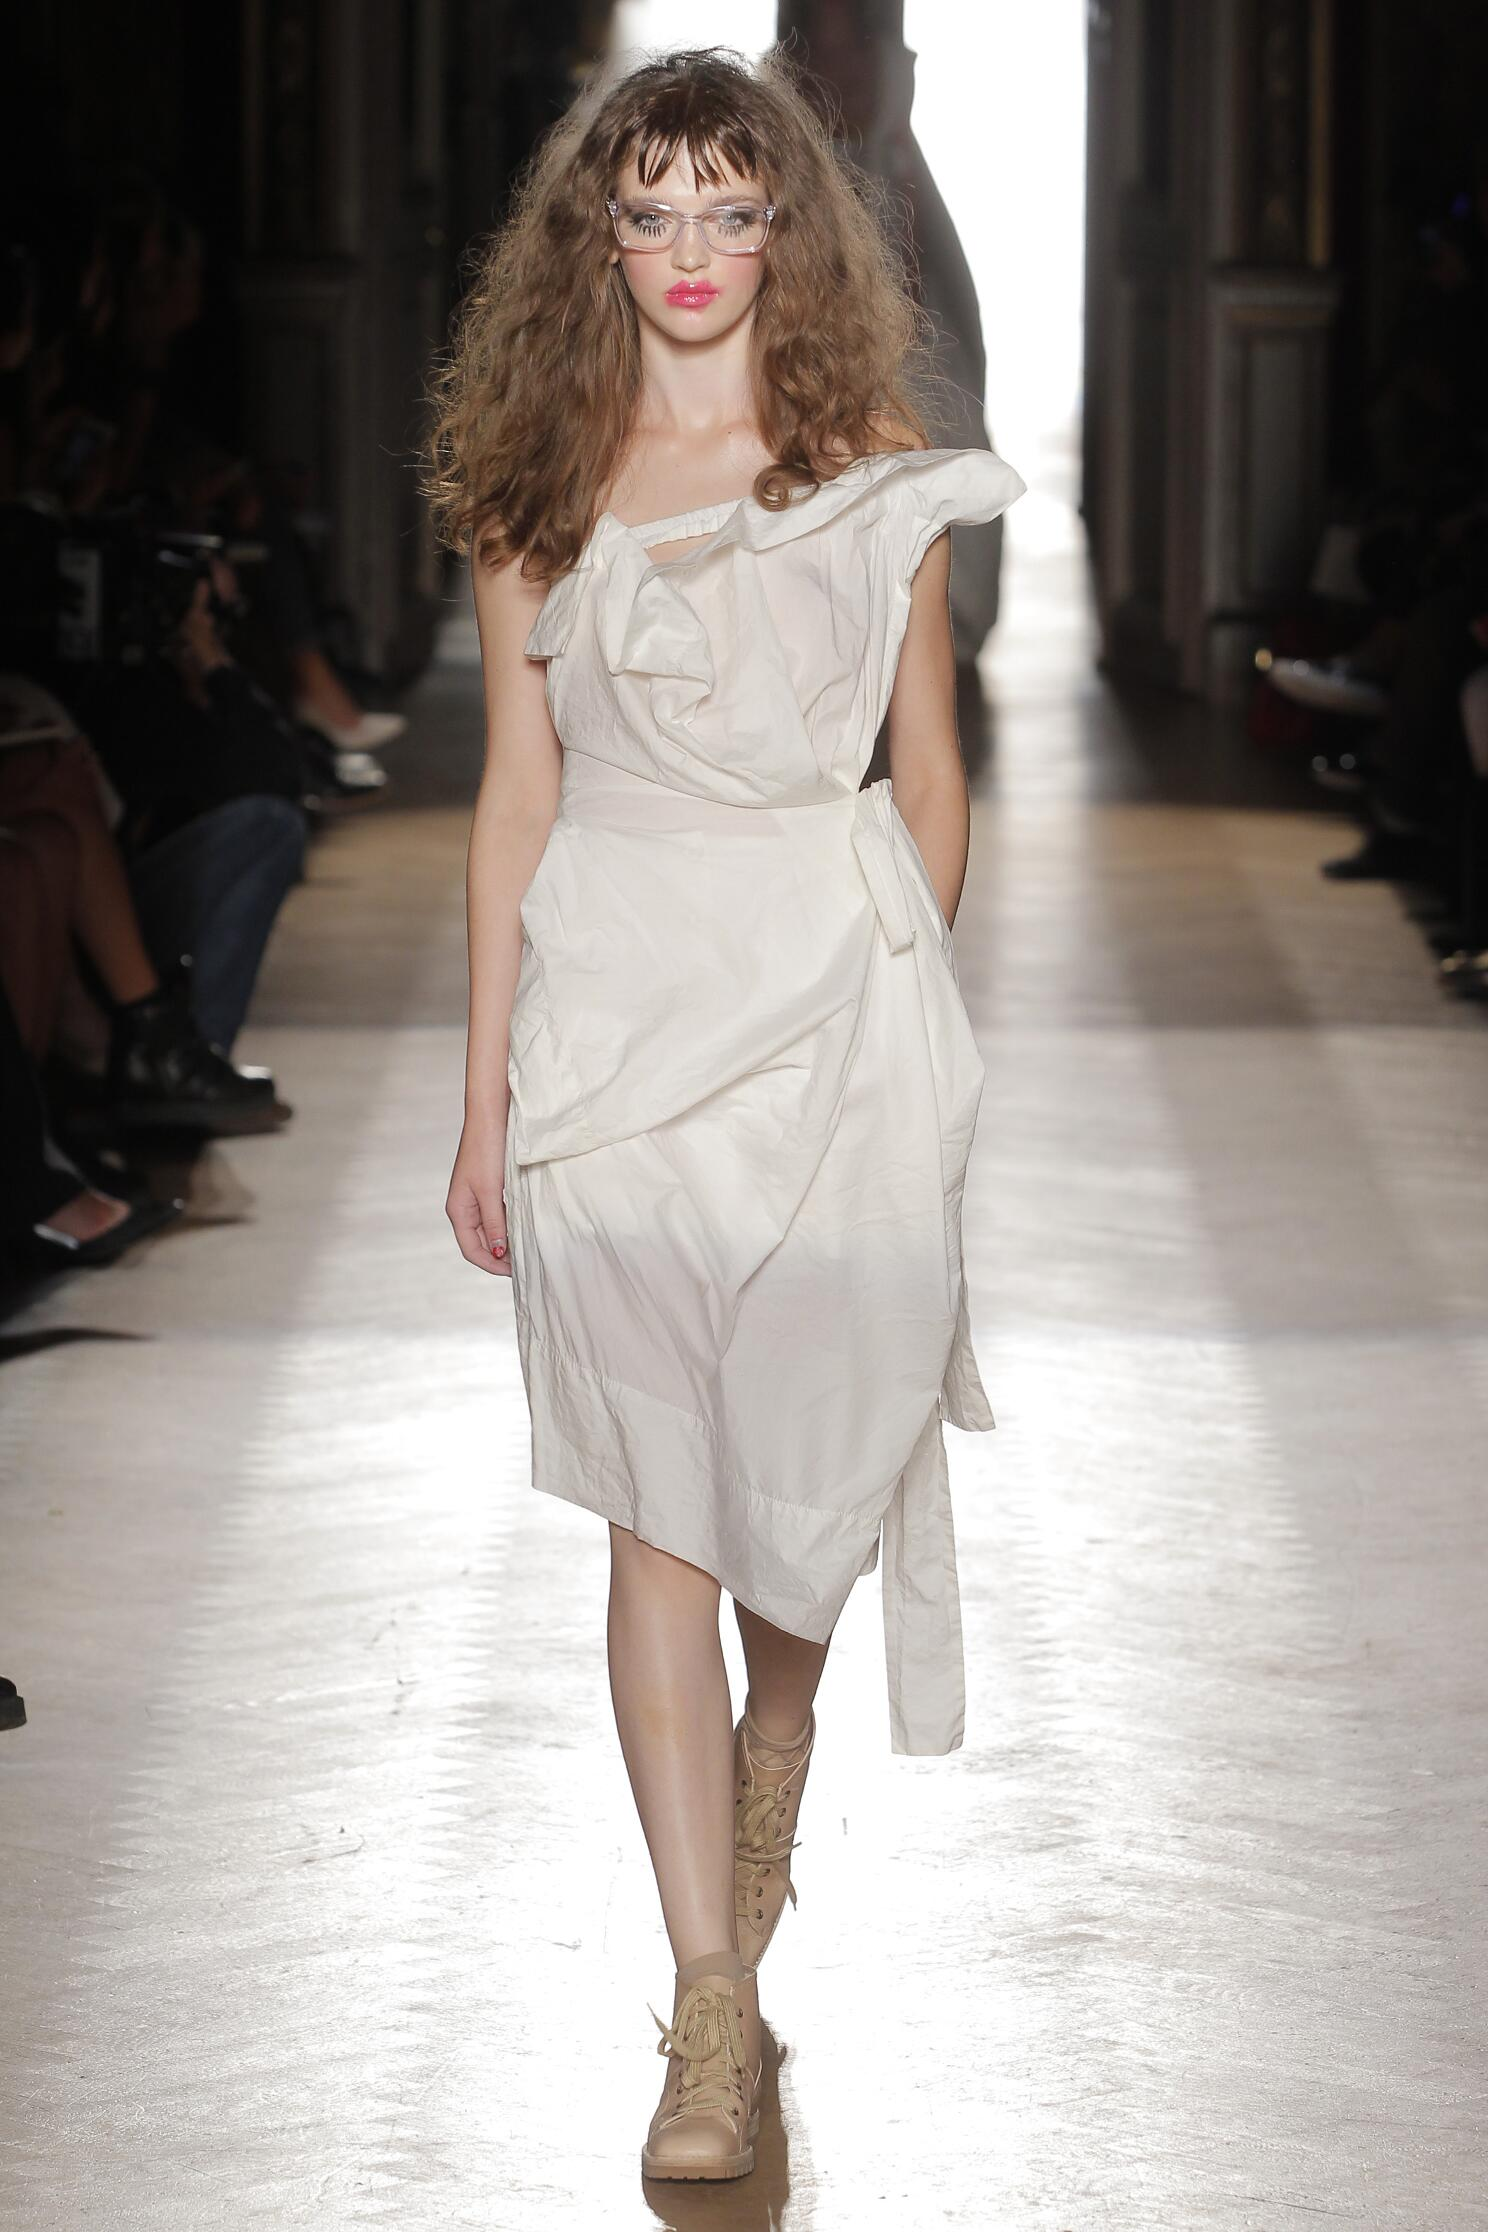 Spring 2015 Woman Fashion Show Vivienne Westwood Gold Label